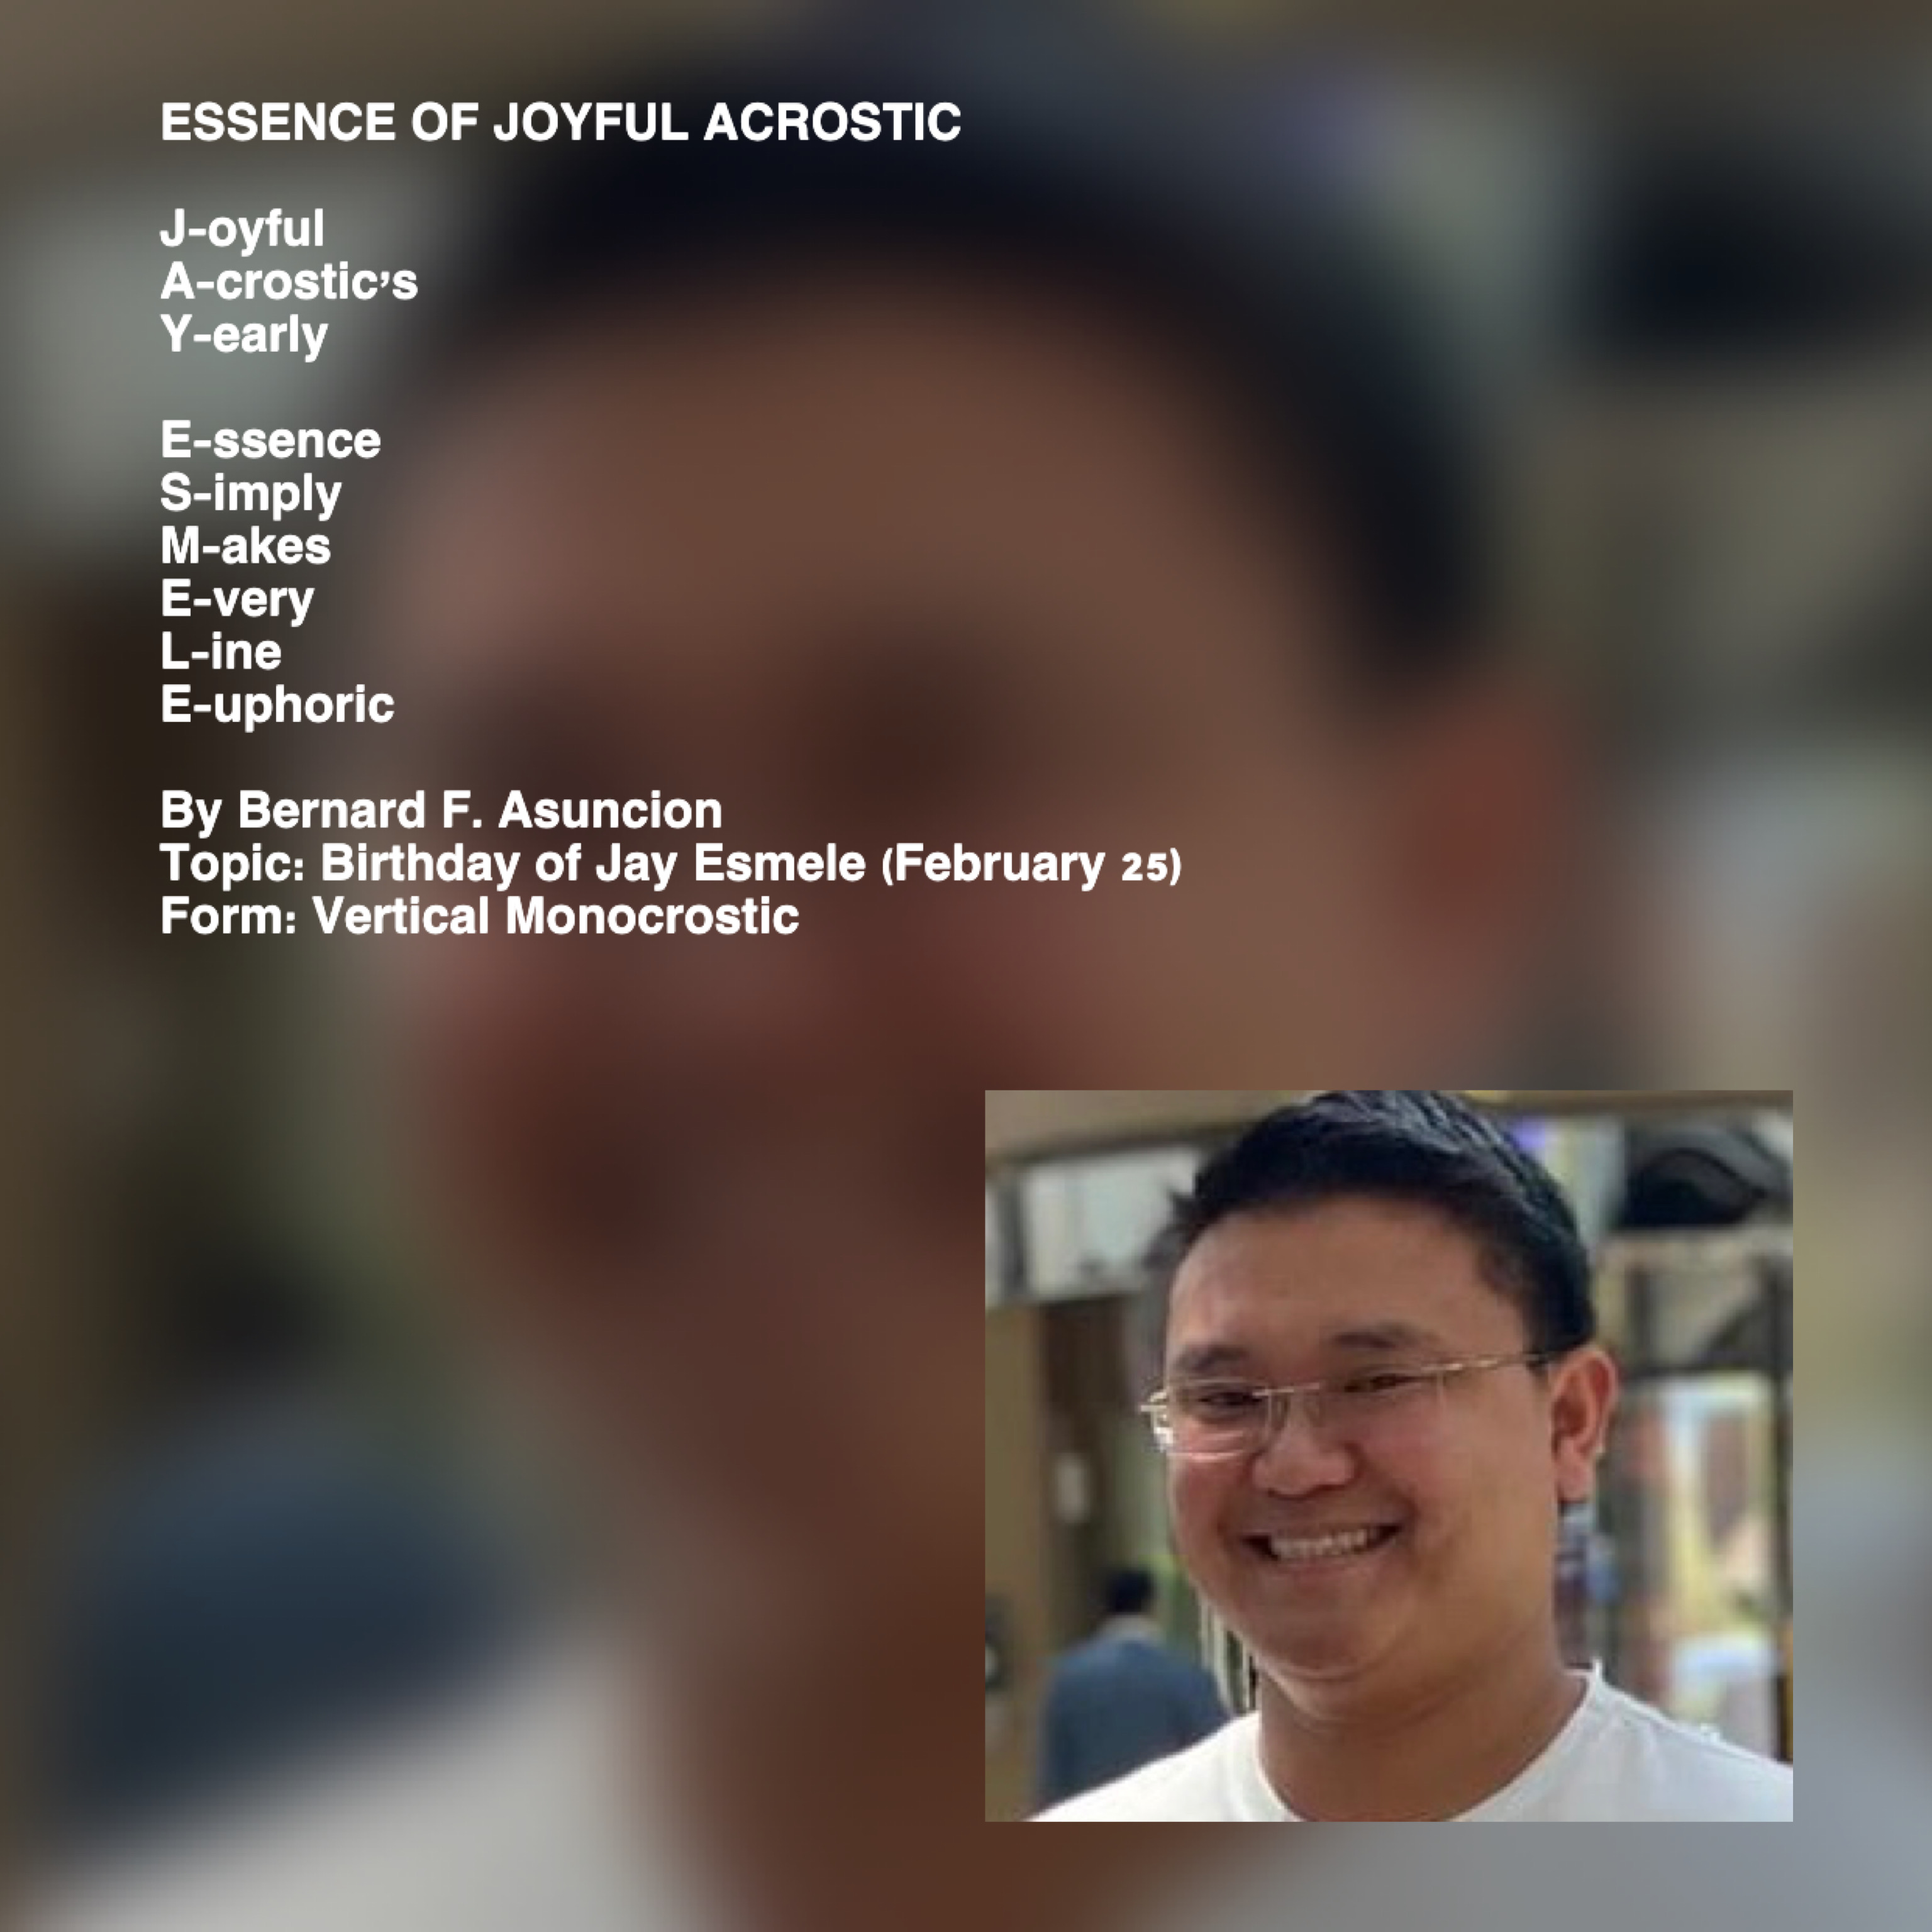 Essence Of Joyful Acrostic